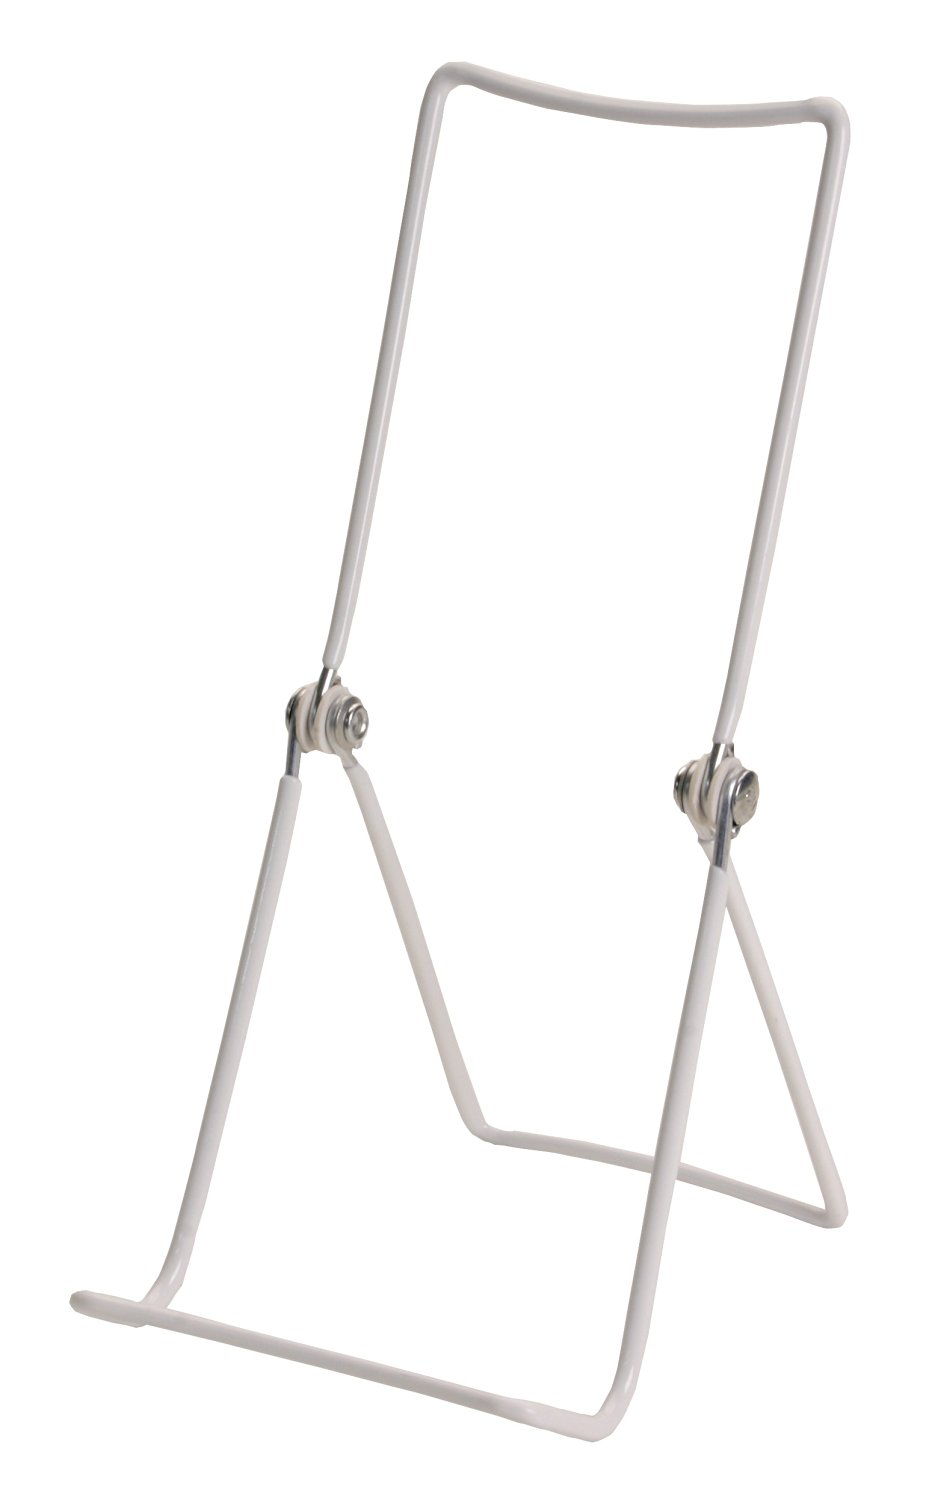 "Gibson Holders 12 3A Adjustable Wire Display Easels- 3.75"" W x 8"" H with 1.5"" display ledge, White"